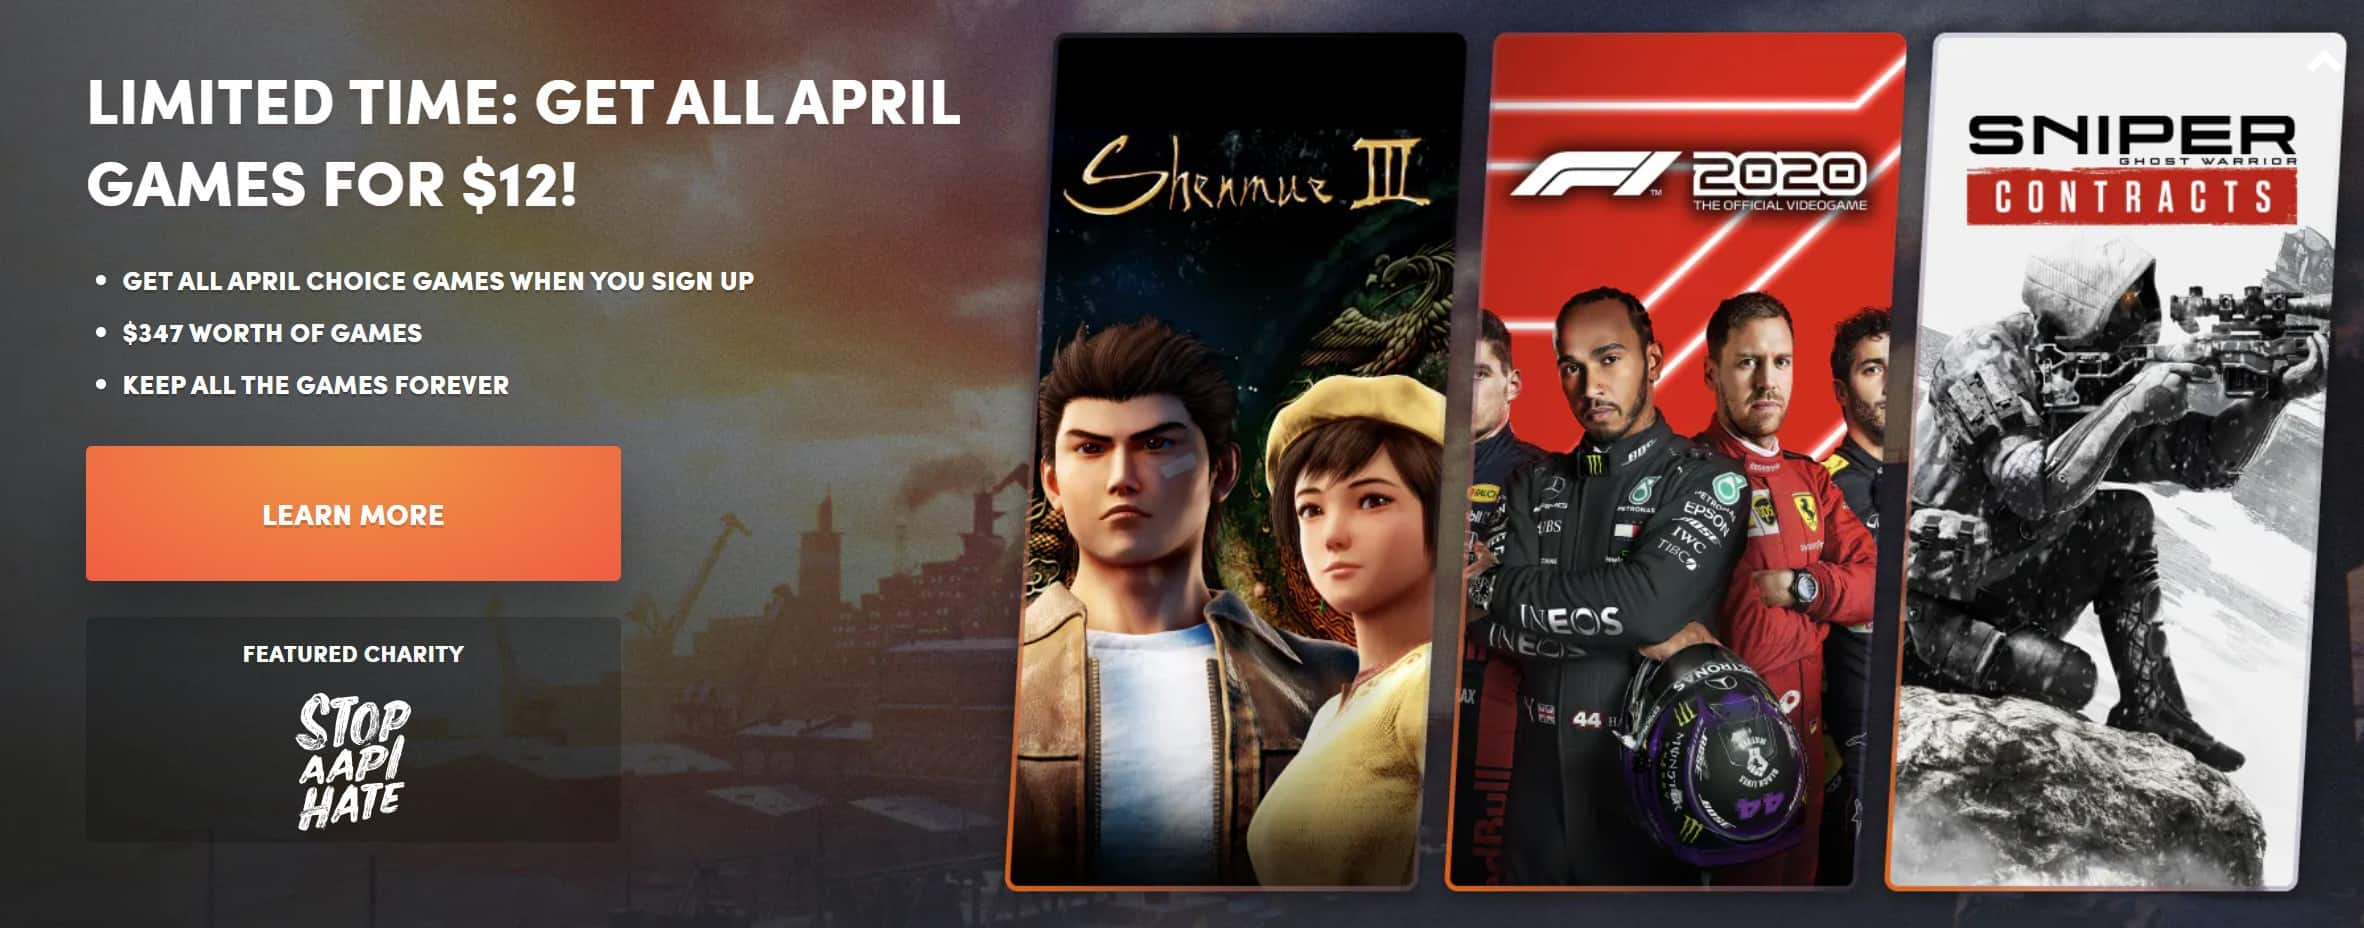 Humble Choice April Bundle: Shenmue III, Sniper Ghost Warrior Contracts, F1® 2020 and more $12+tax @Humble Bundle